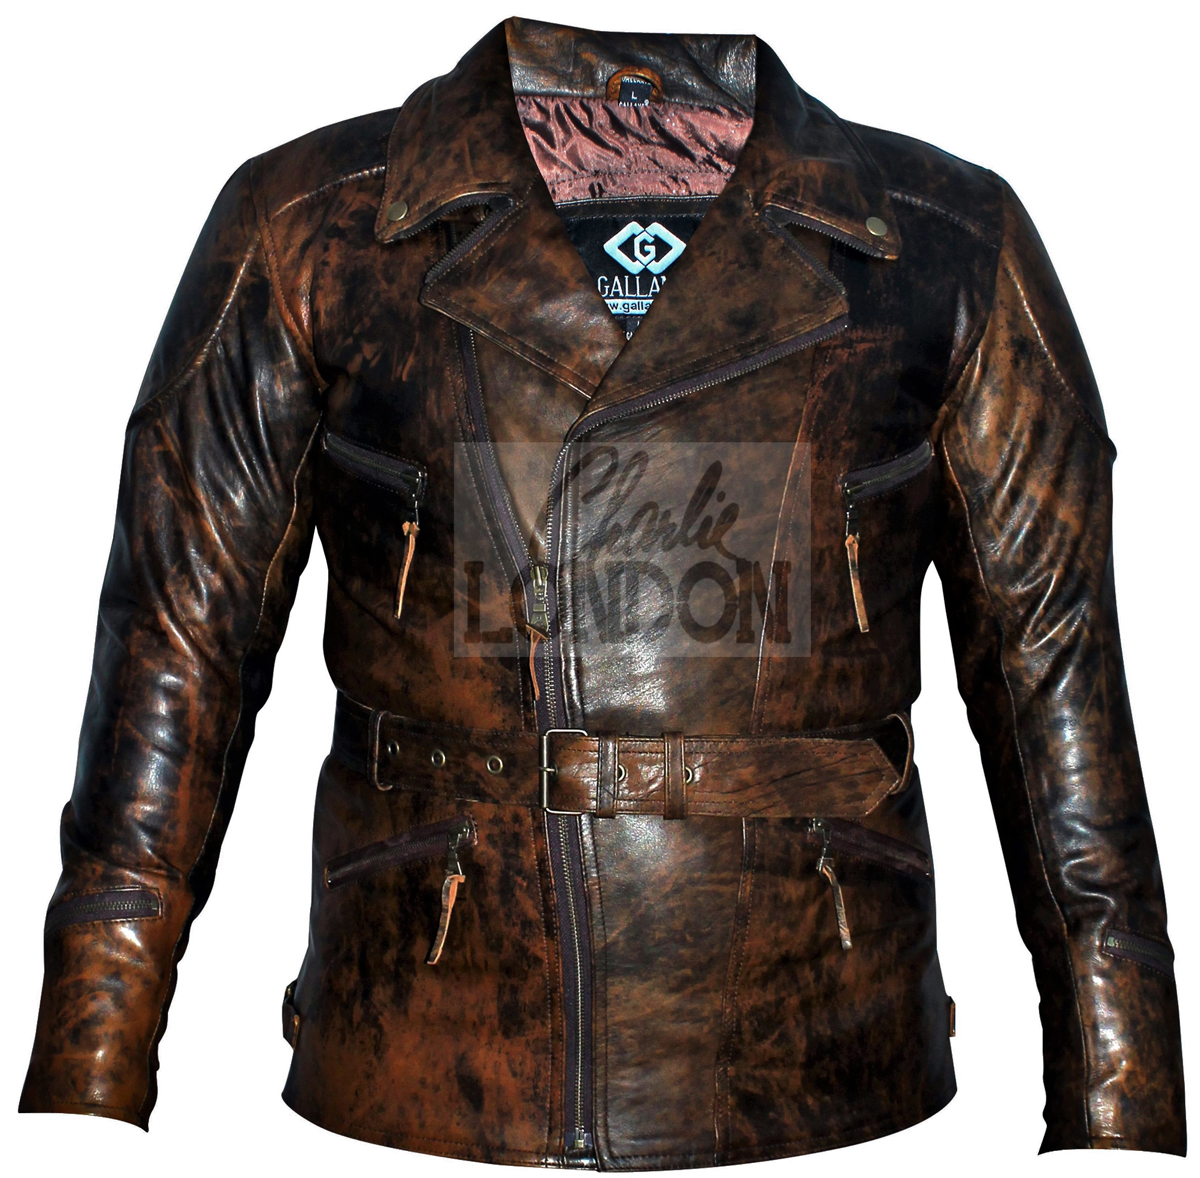 3/4 Eddie Brown Vintage Motorcycle Biker Jacket